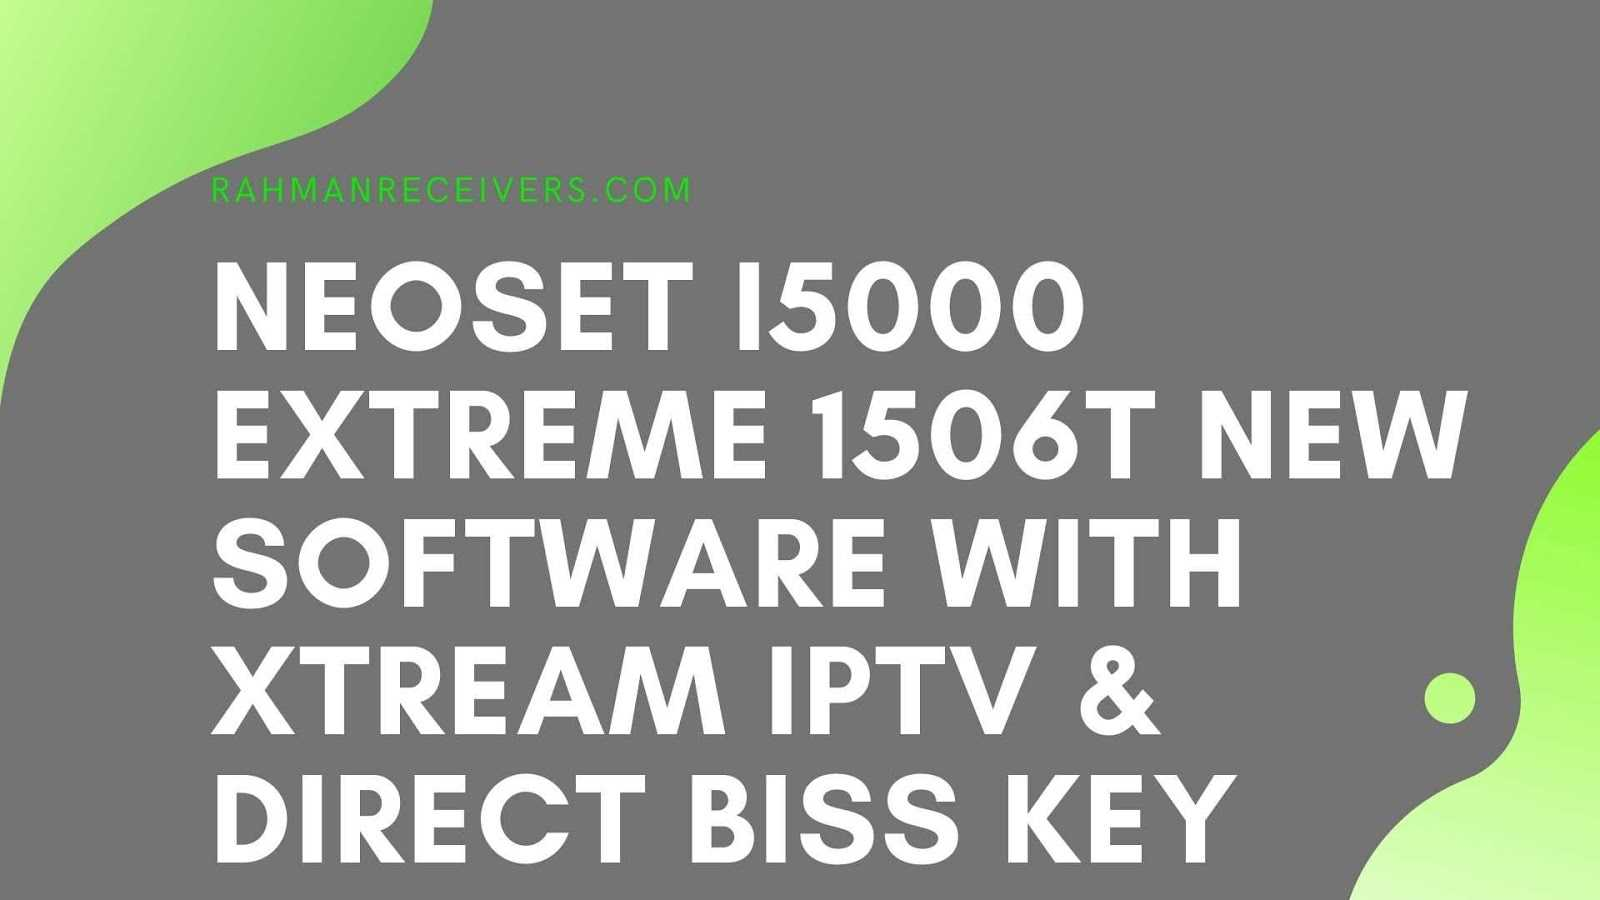 NEOSET i5000 EXTREME 1506T NEW SOFTWARE WITH XTREAM IPTV & DIRECT BISS KEY OPTION